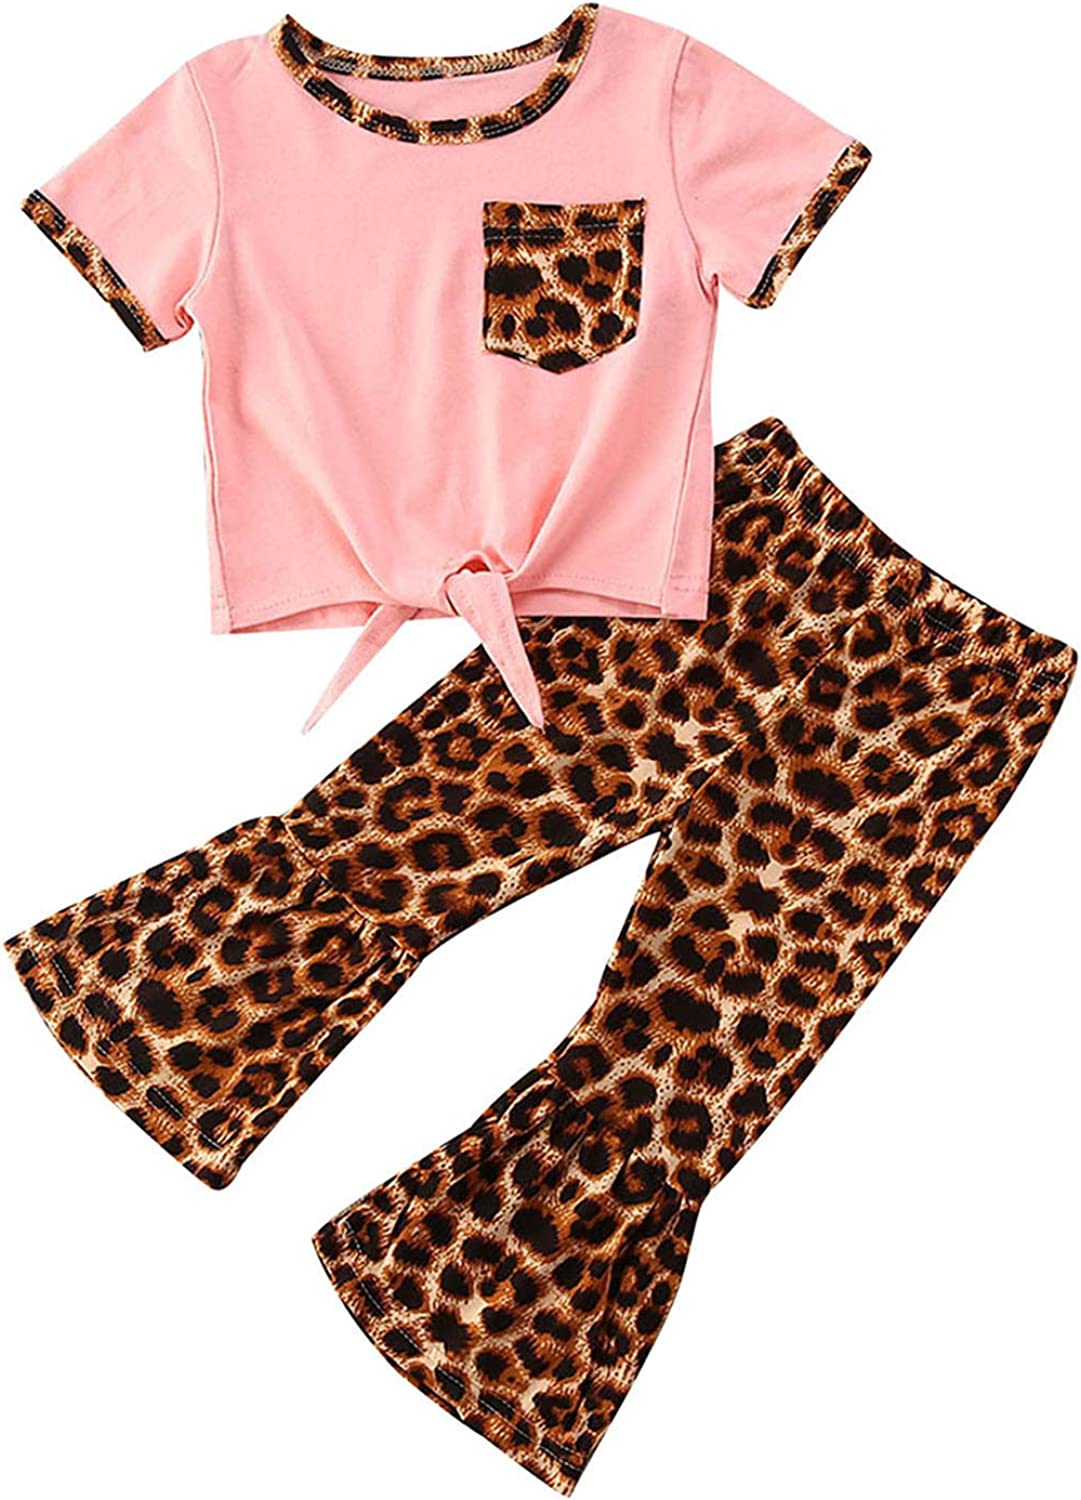 Baby Girls Flared Pants Outfit Crop Denver Mall Tops Shoulder Bargain sale Ruffle Off